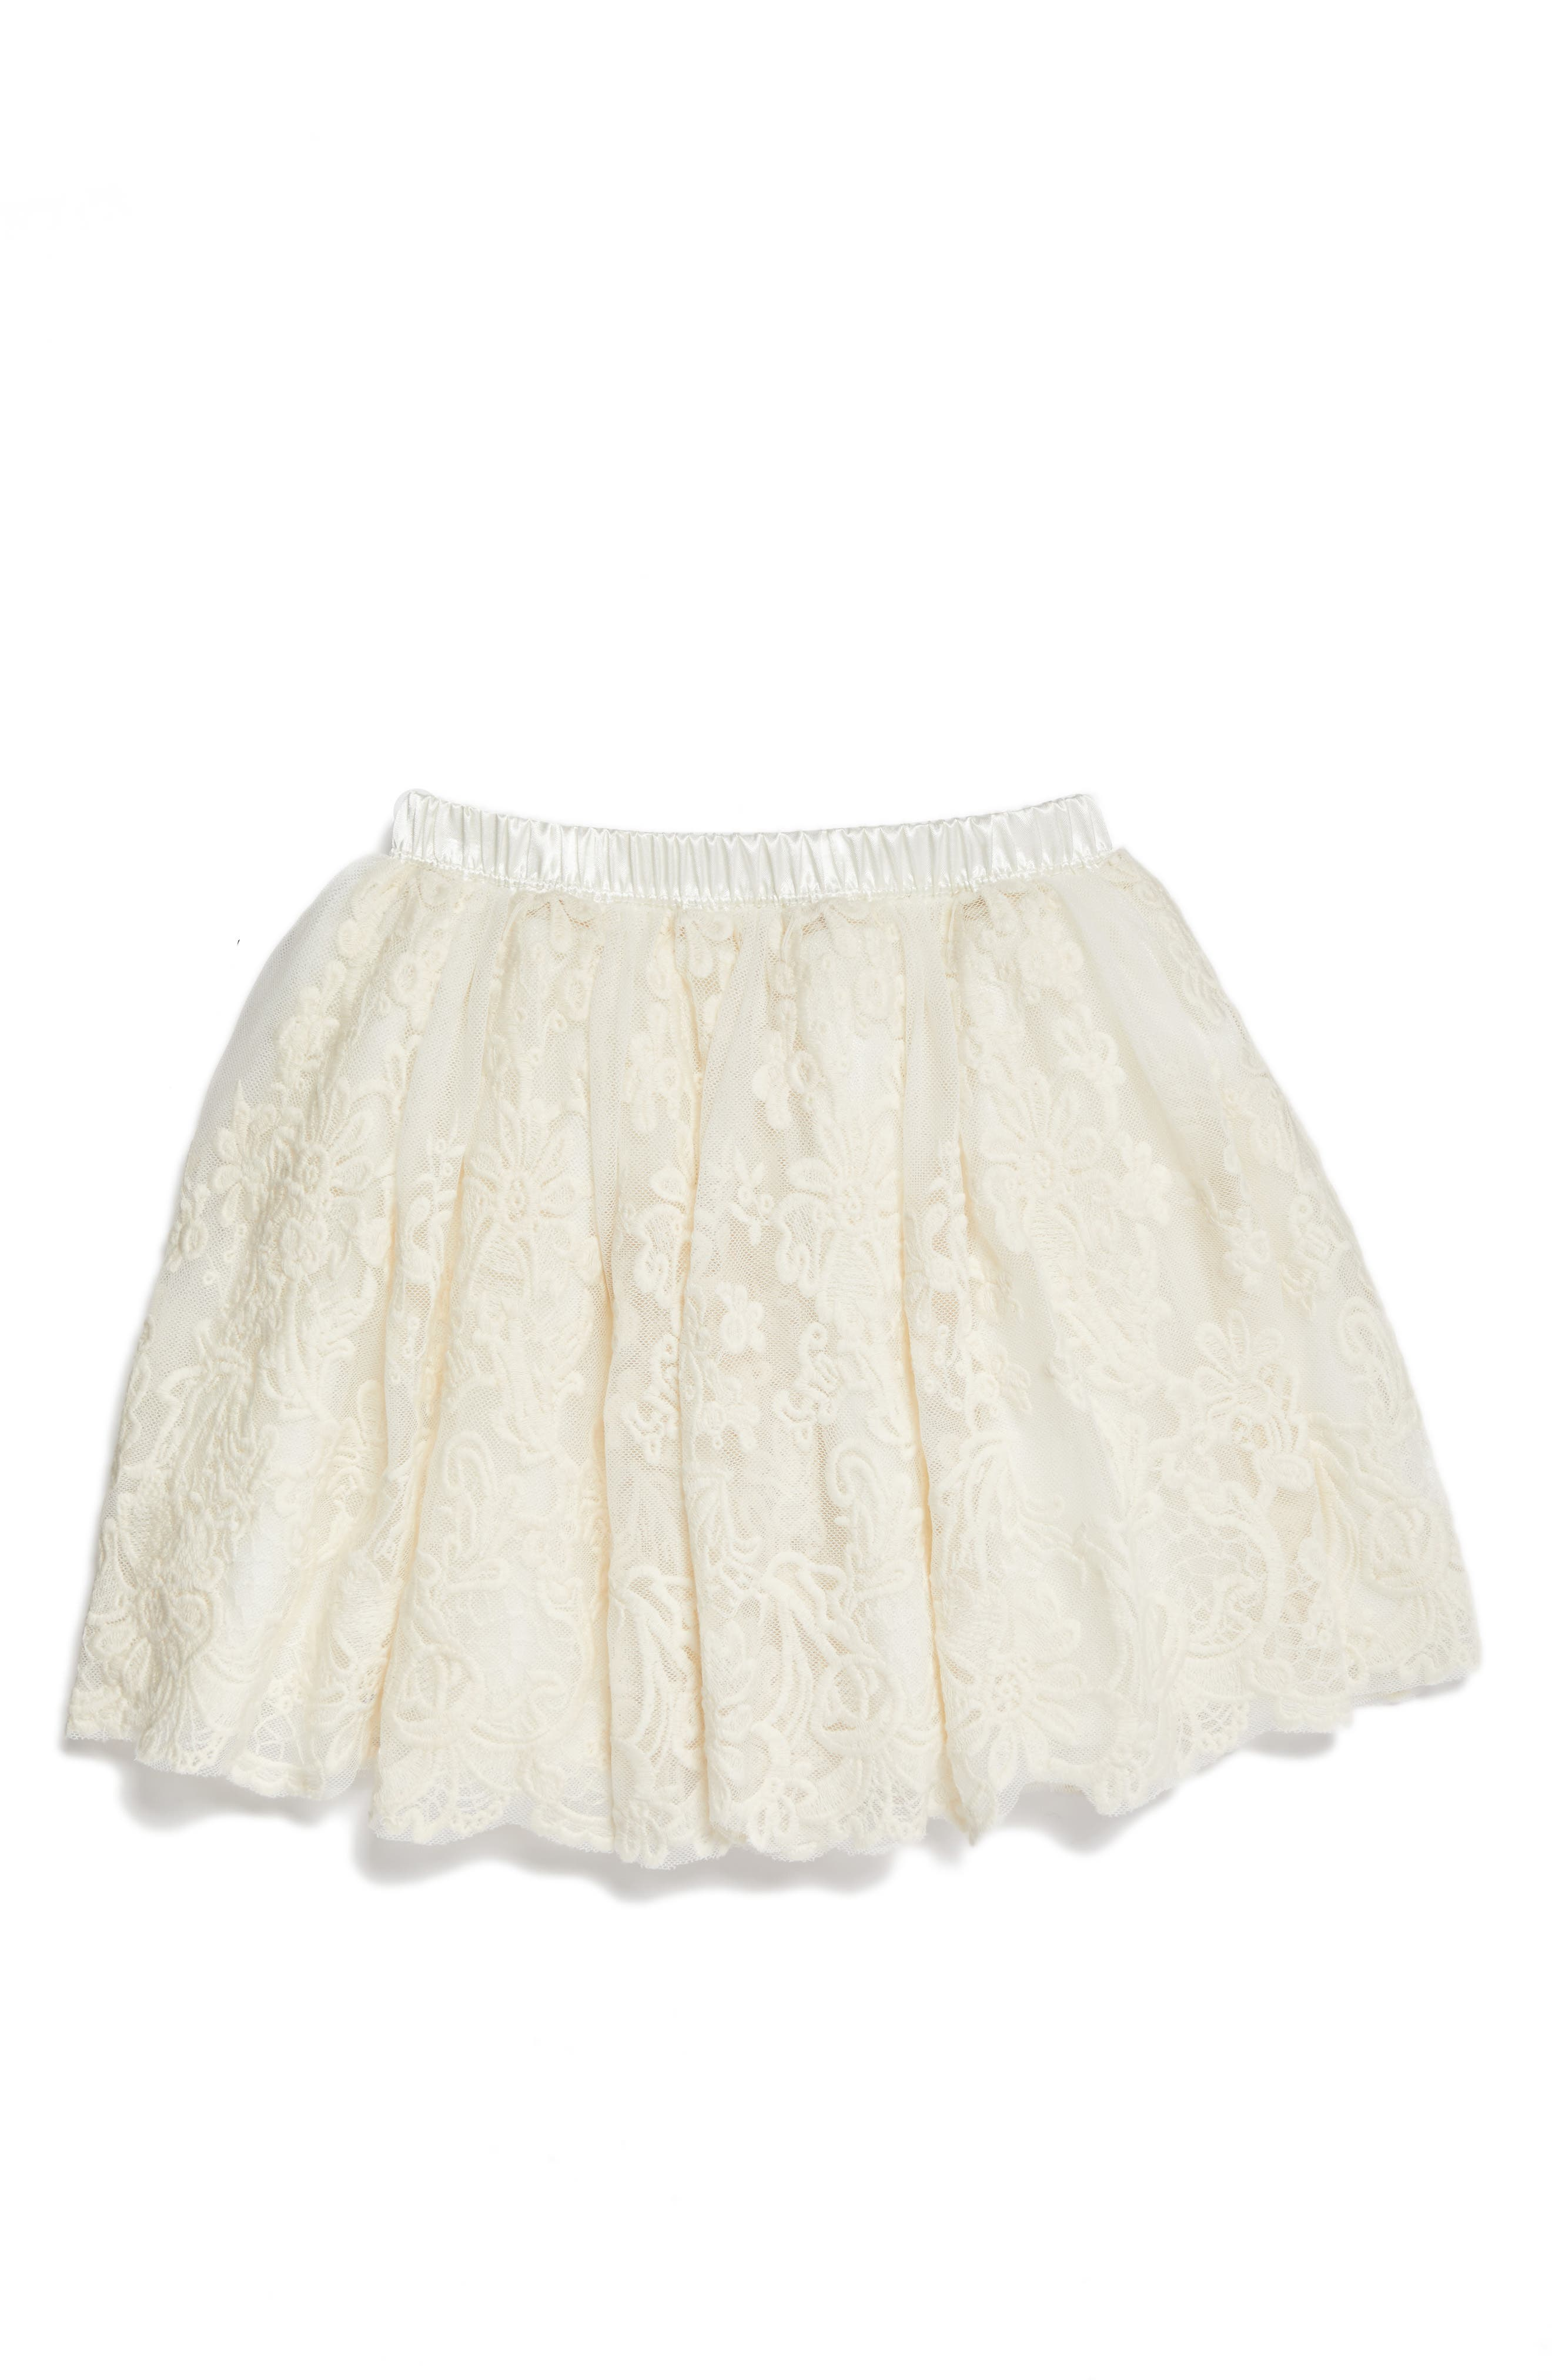 Lace Tutu Skirt,                             Main thumbnail 1, color,                             IVORY